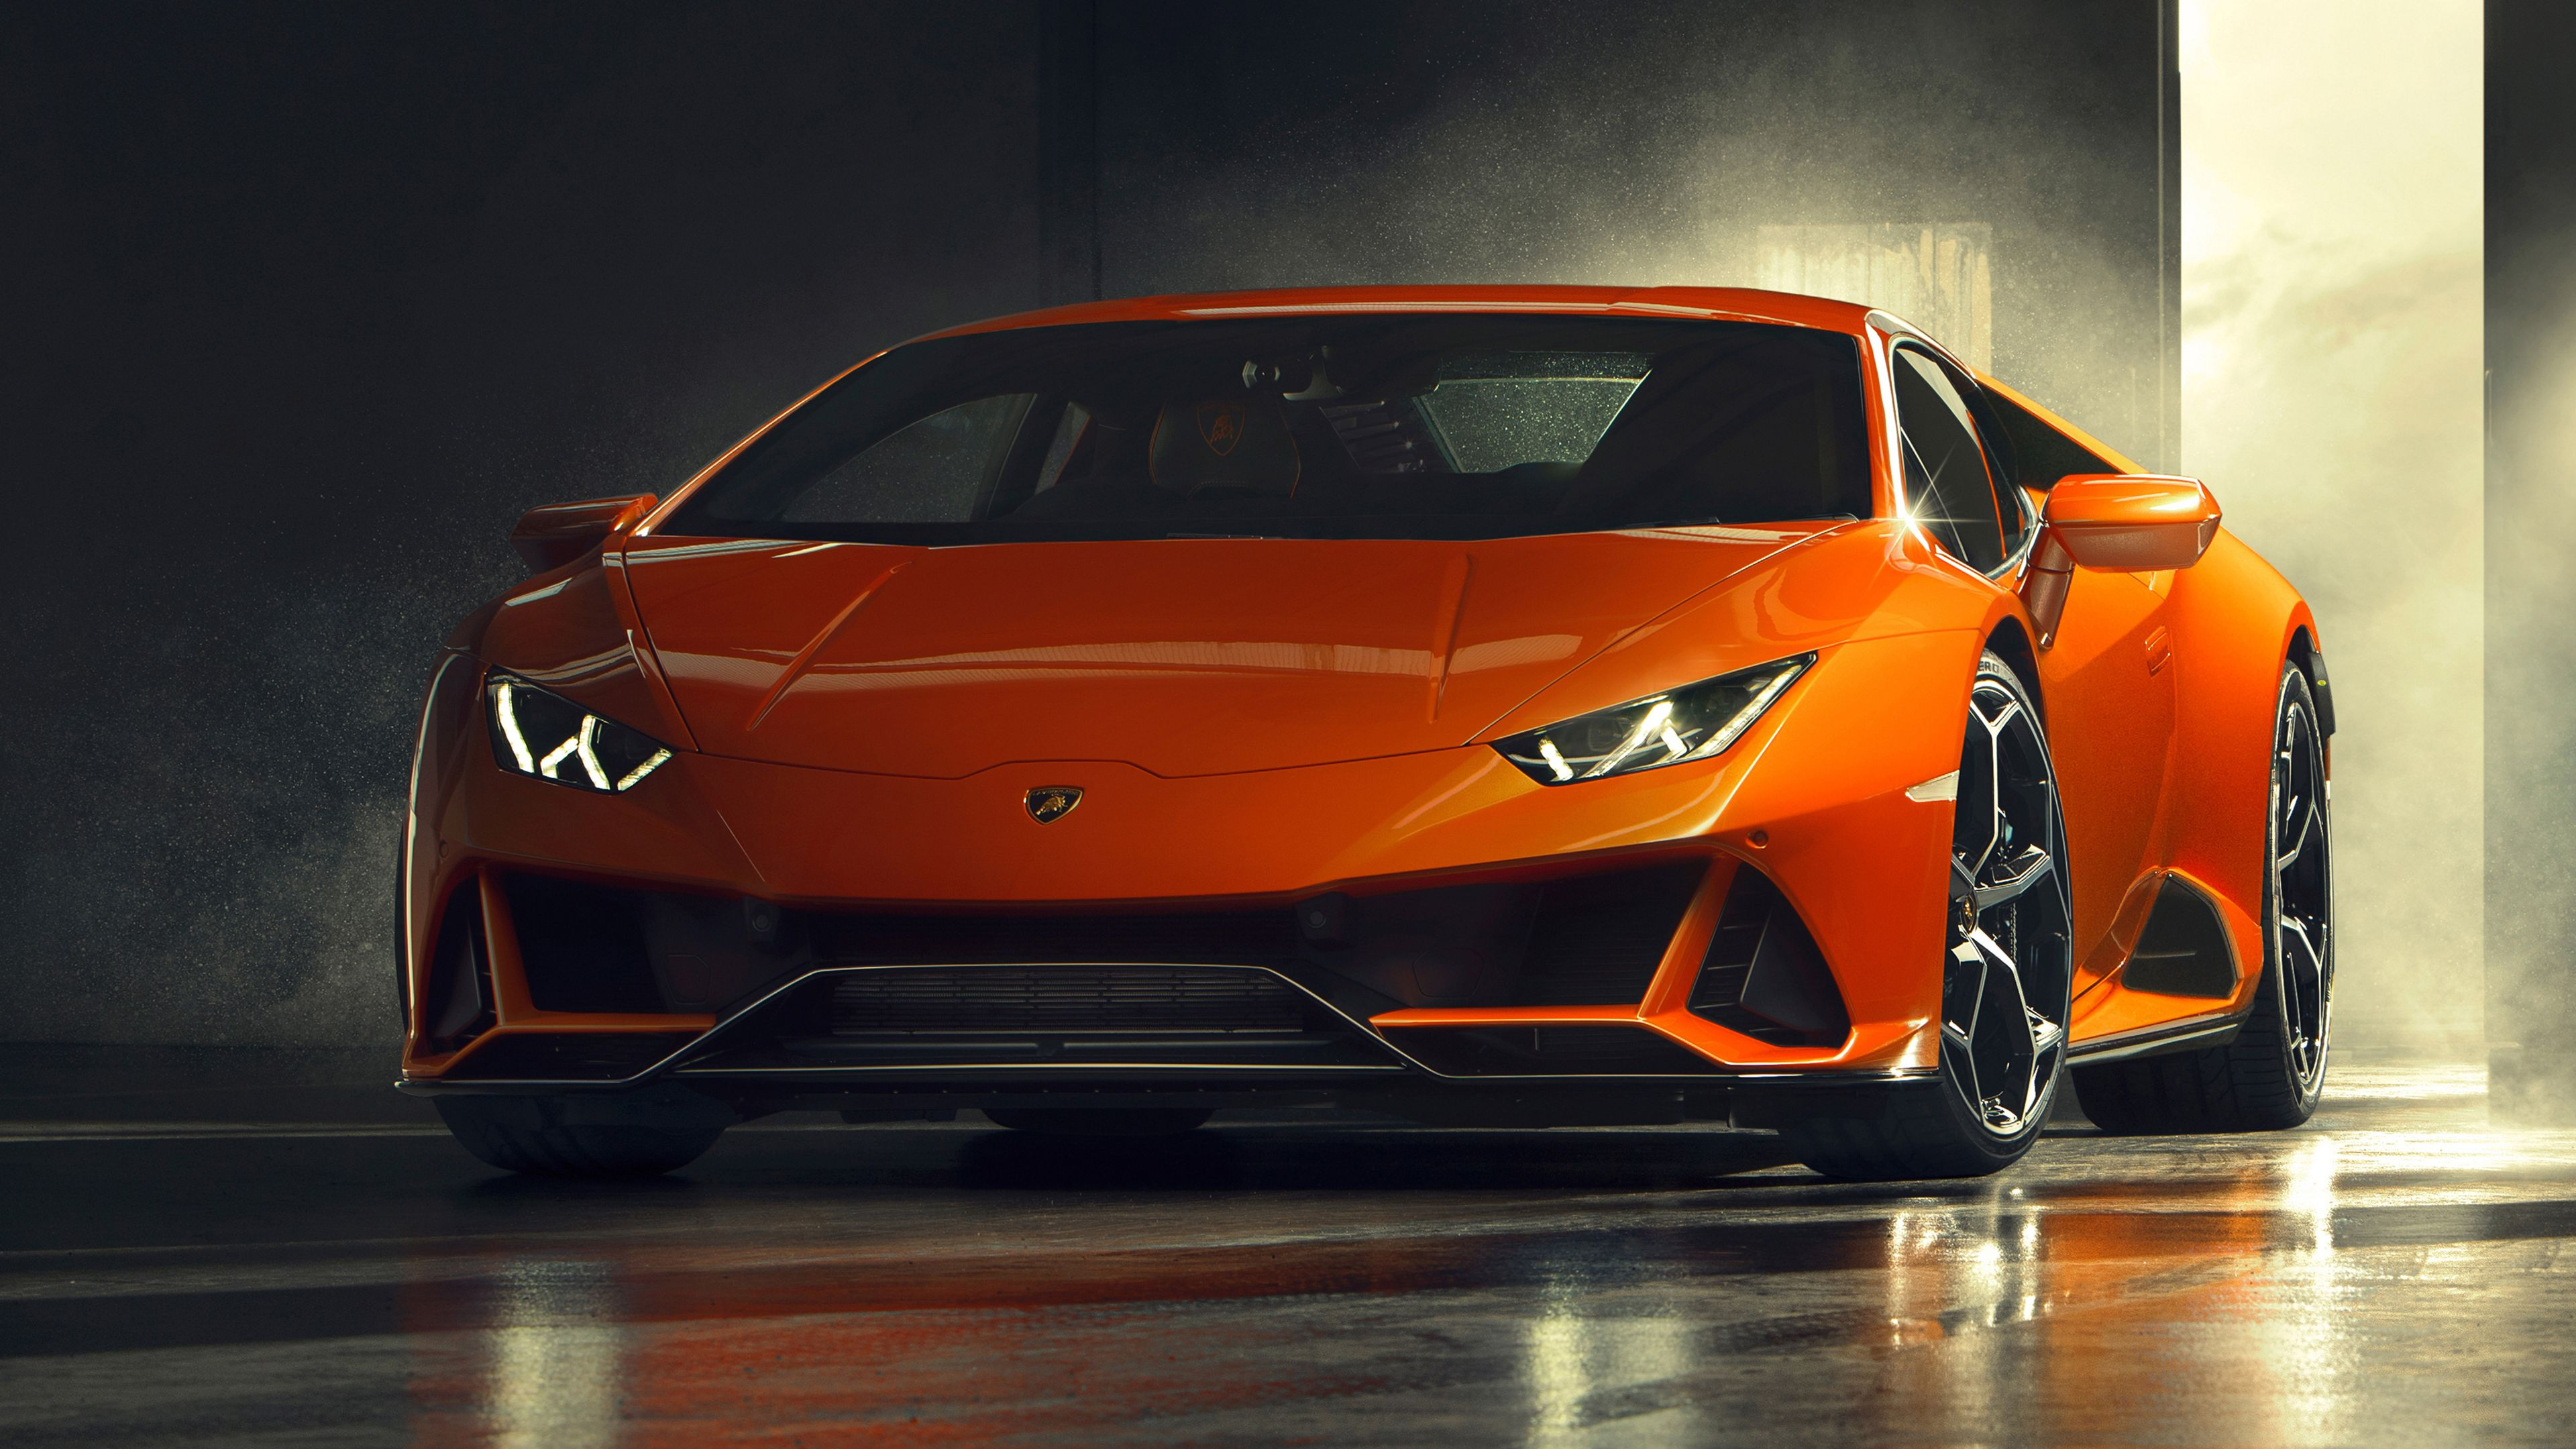 3840x2160 4k Wallpaper For Mobile 1920x1080 Cars - Best Cars Wallpapers